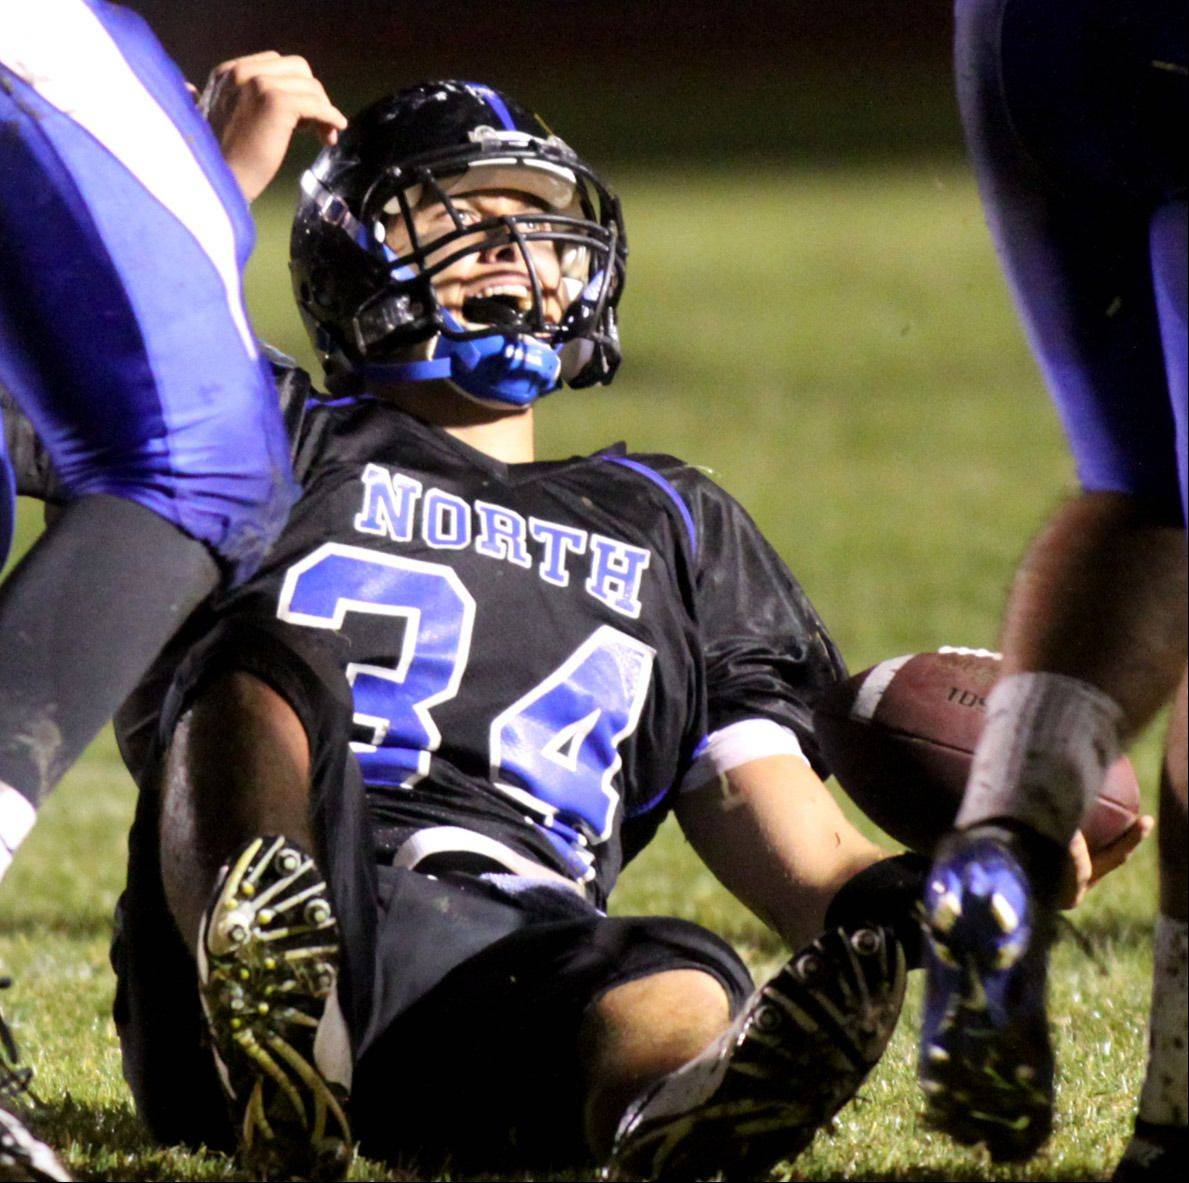 St. Charles North's Evan Kurtz reacts after picking up a first down against Geneva at St. Charles North on Friday night.